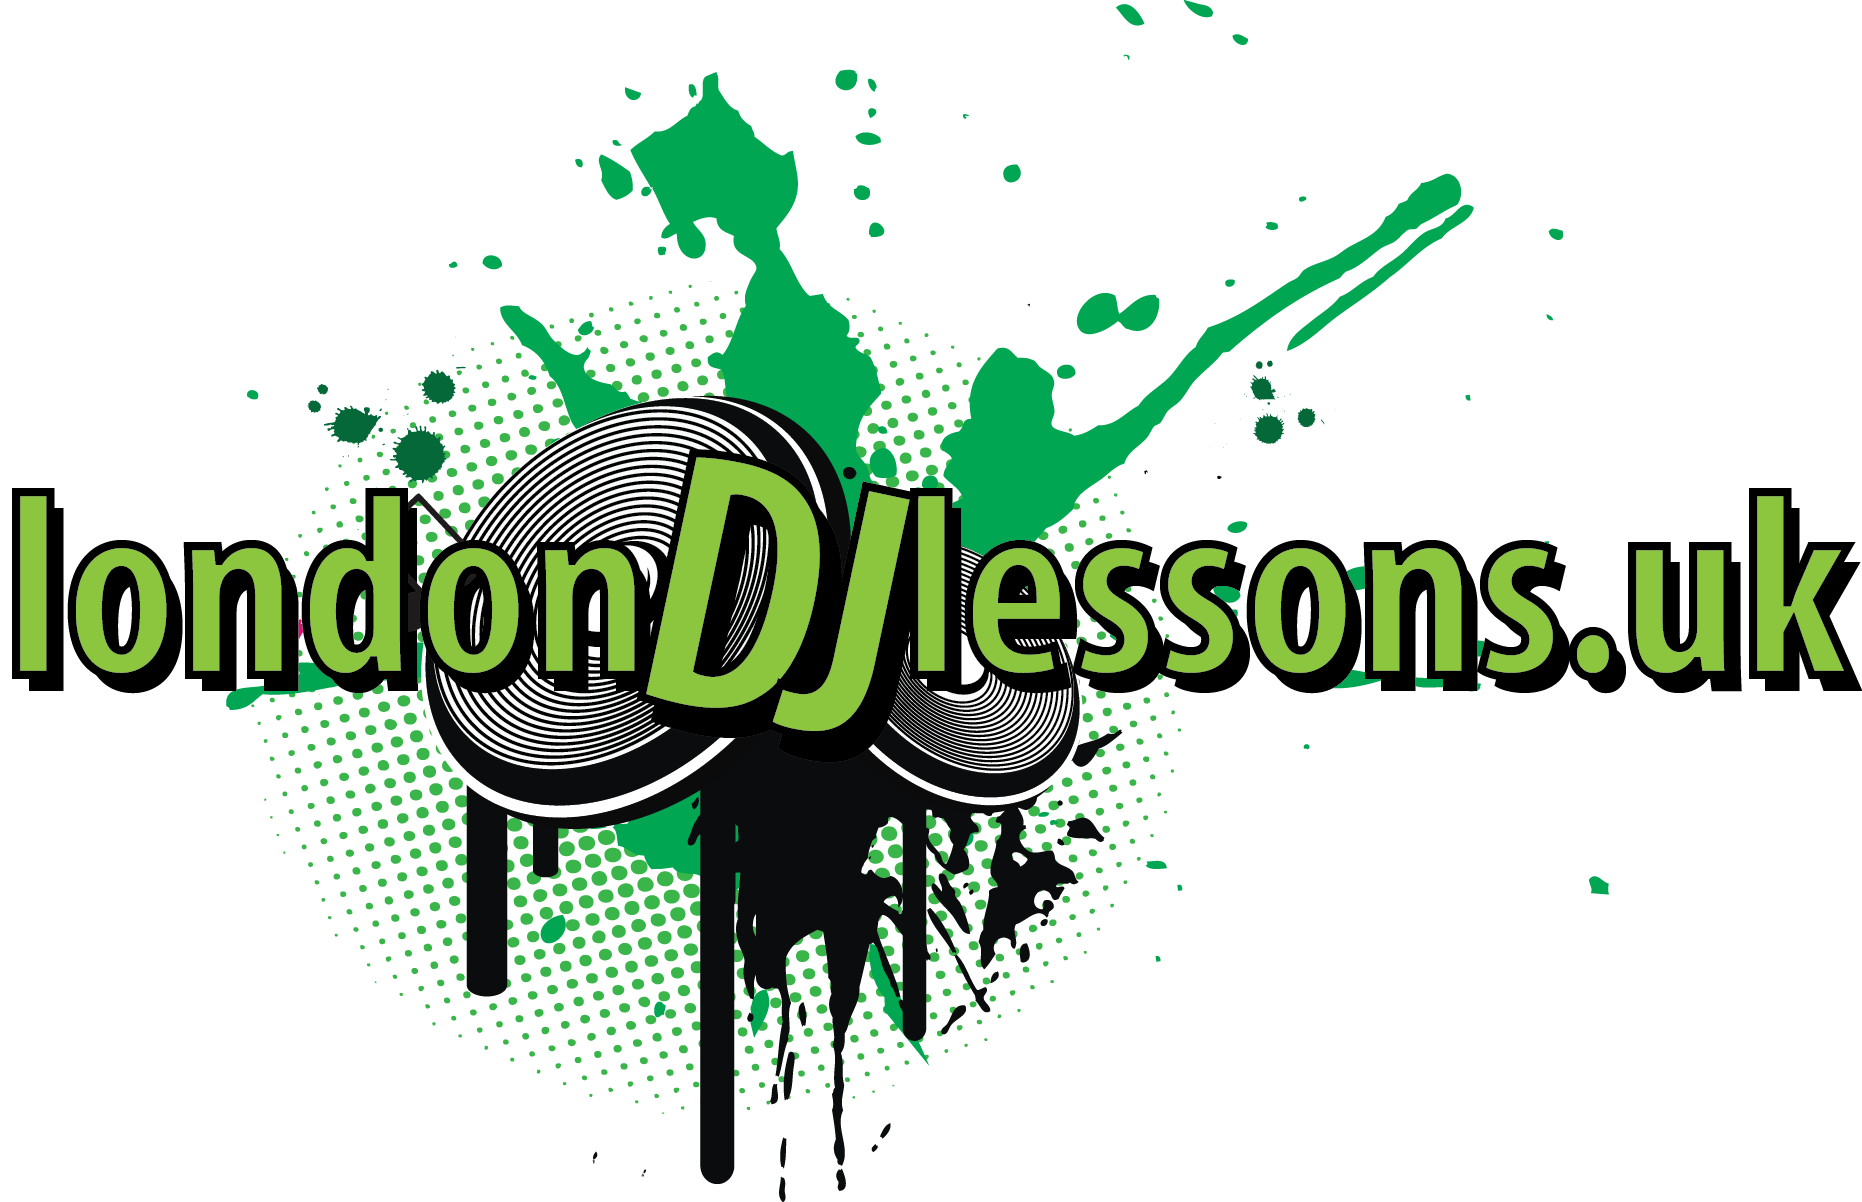 London DJ lessons - teaching DJing since 1999